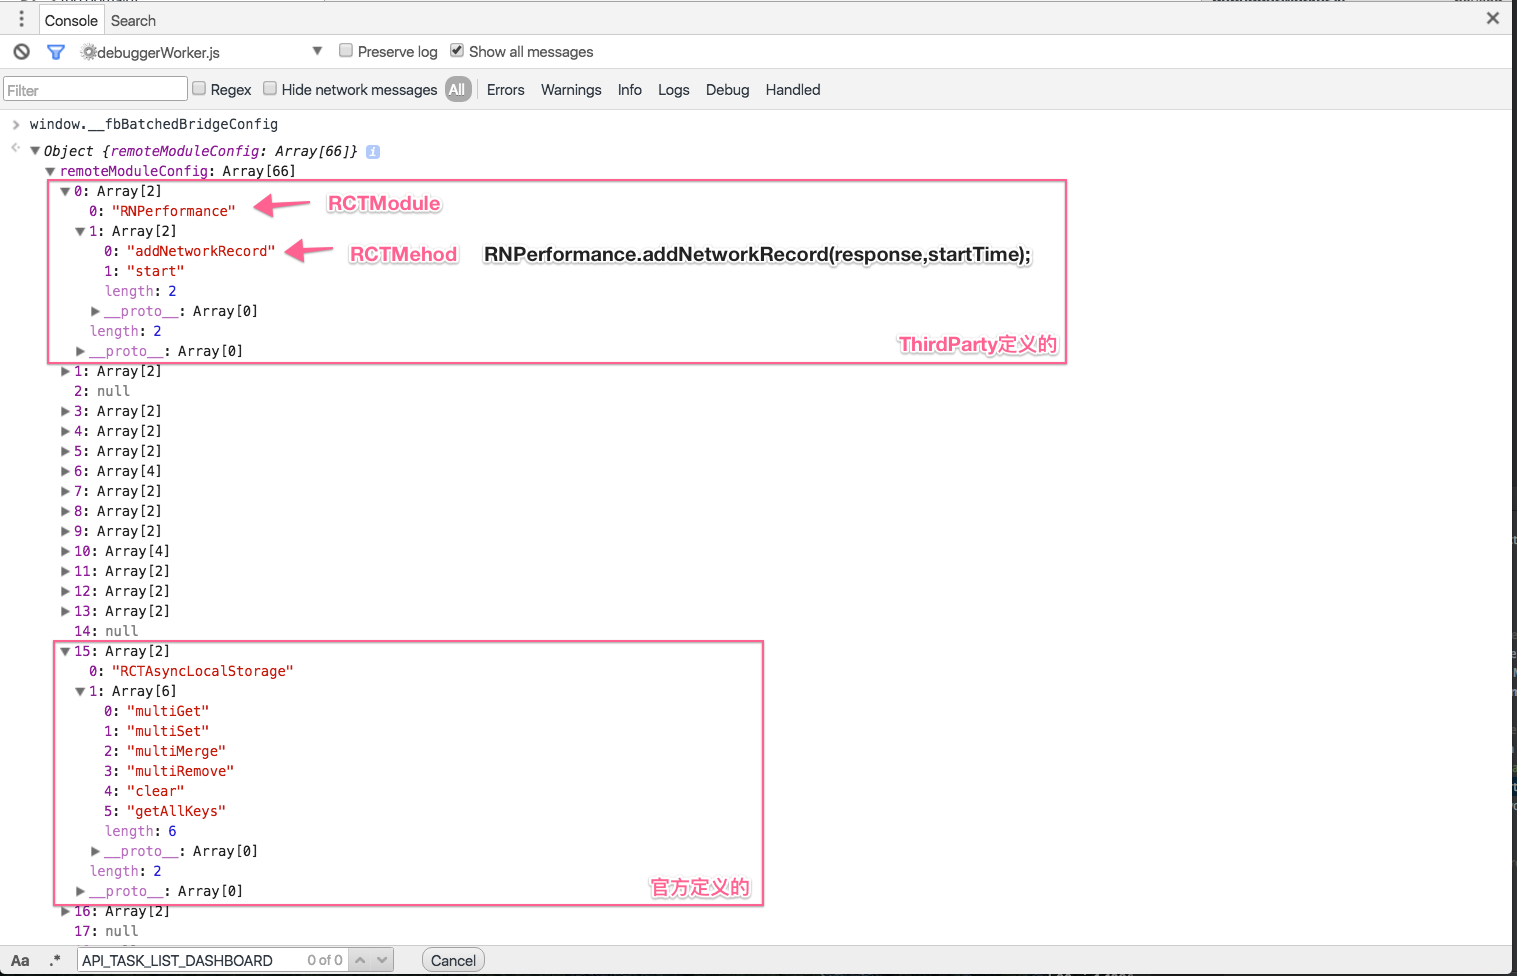 chrome 中的 window.__fbBatchedBridgeConfig